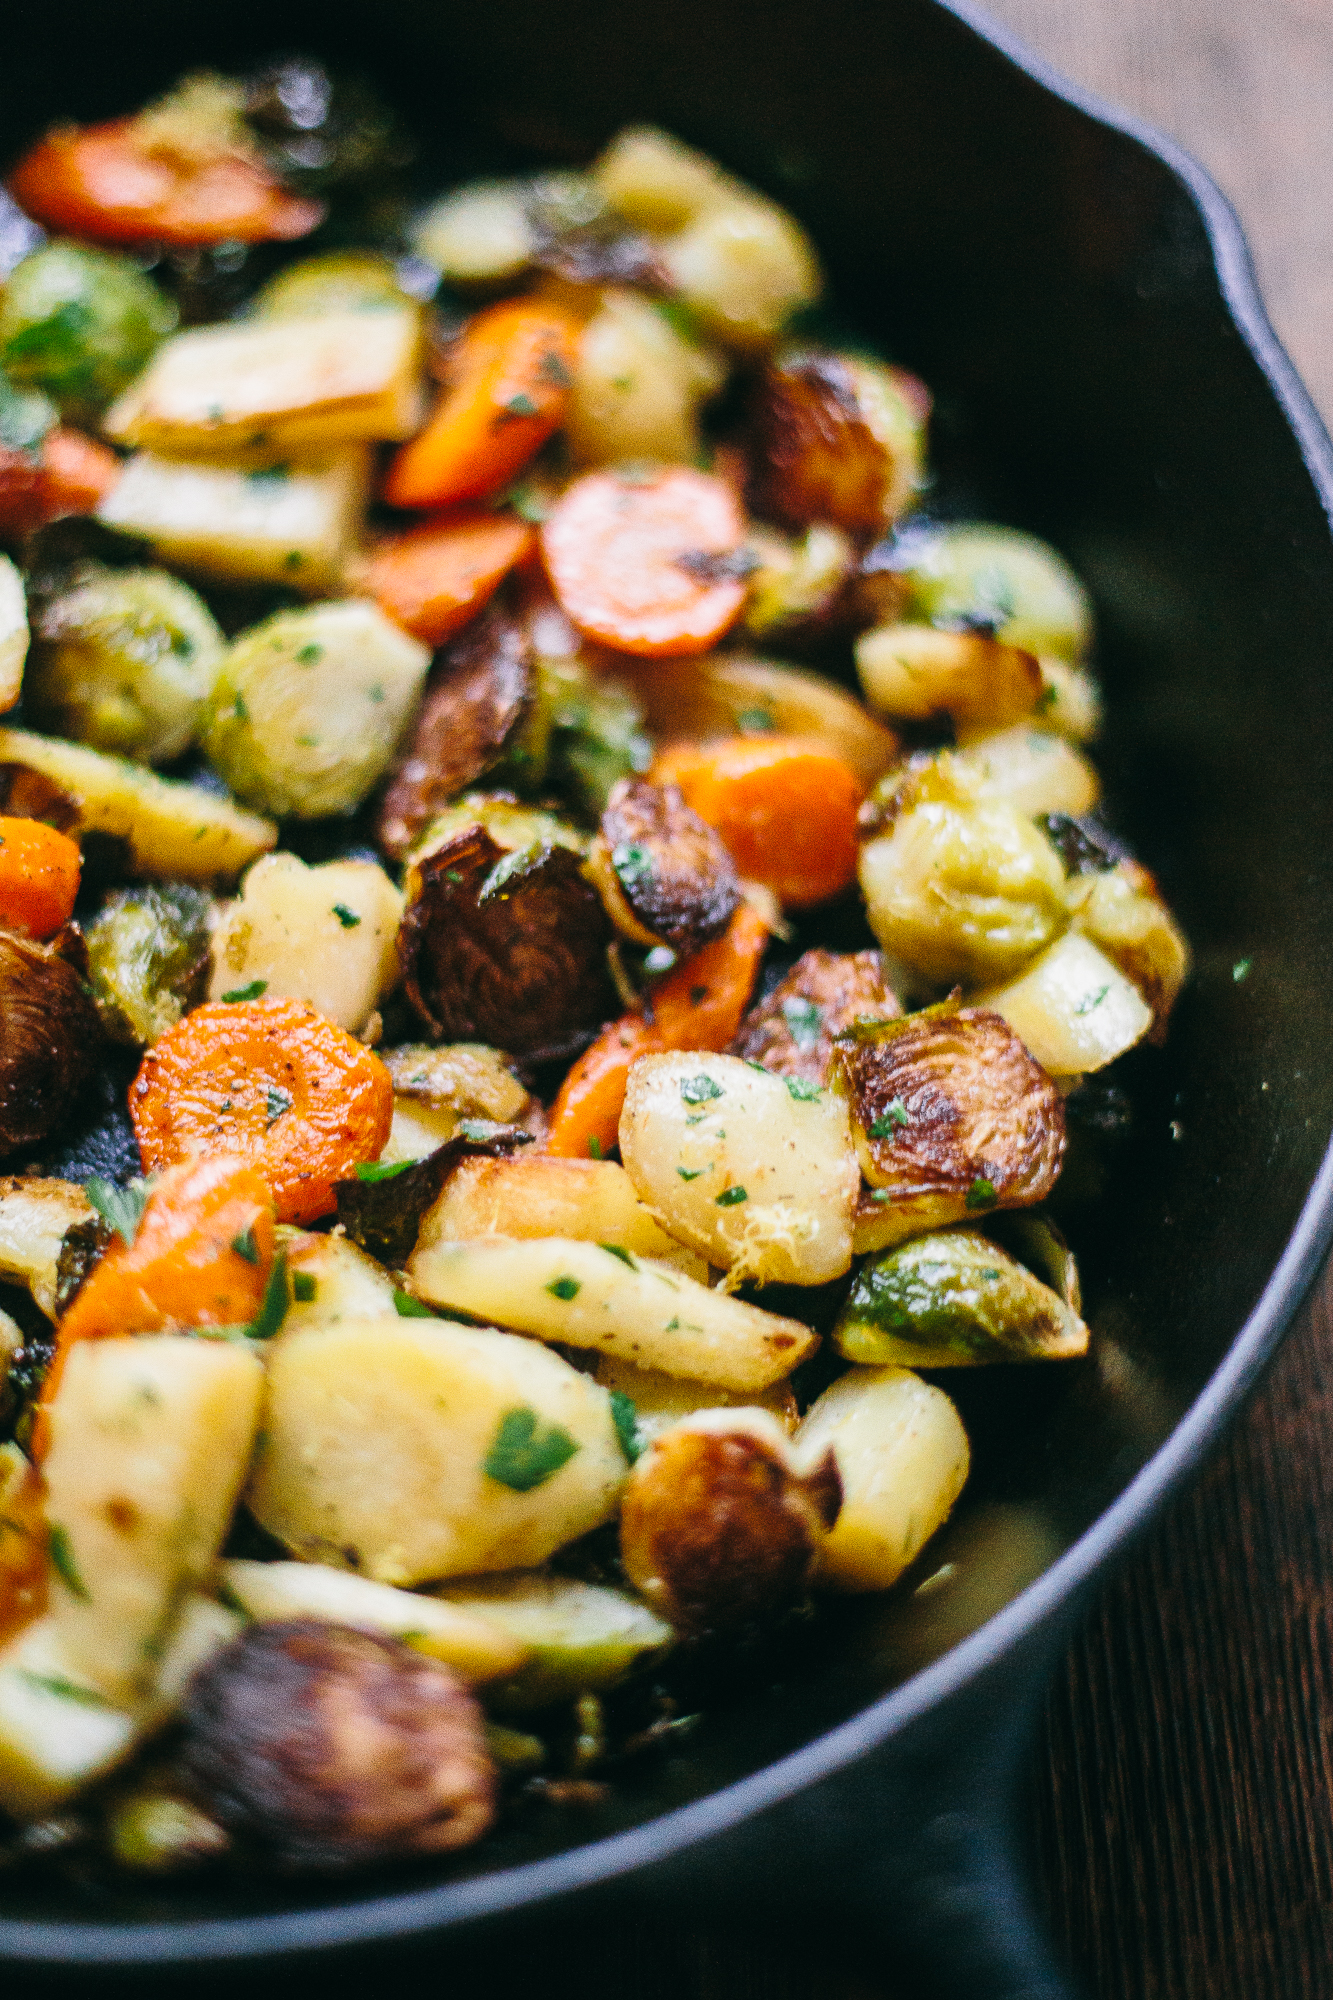 Skillet Roasted Winter Vegetables The Domestic Man